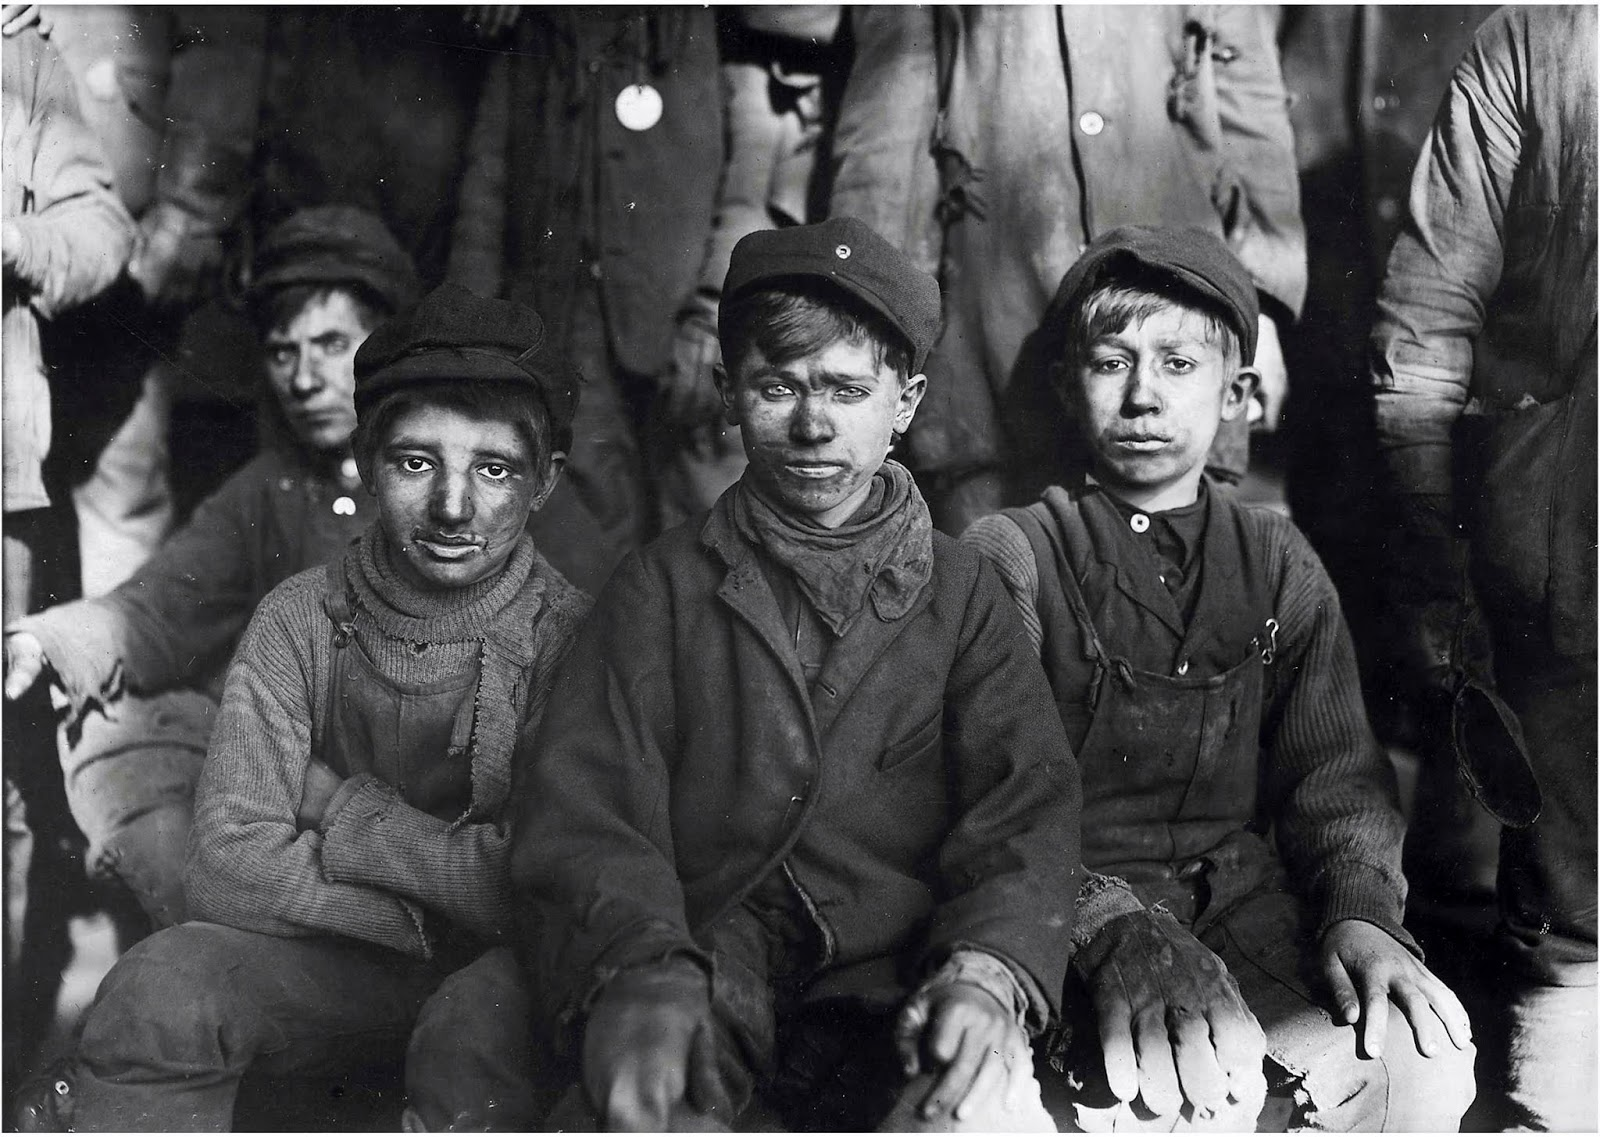 Group of Breaker Boys (1911 January), a photograph by Lewis Hine.